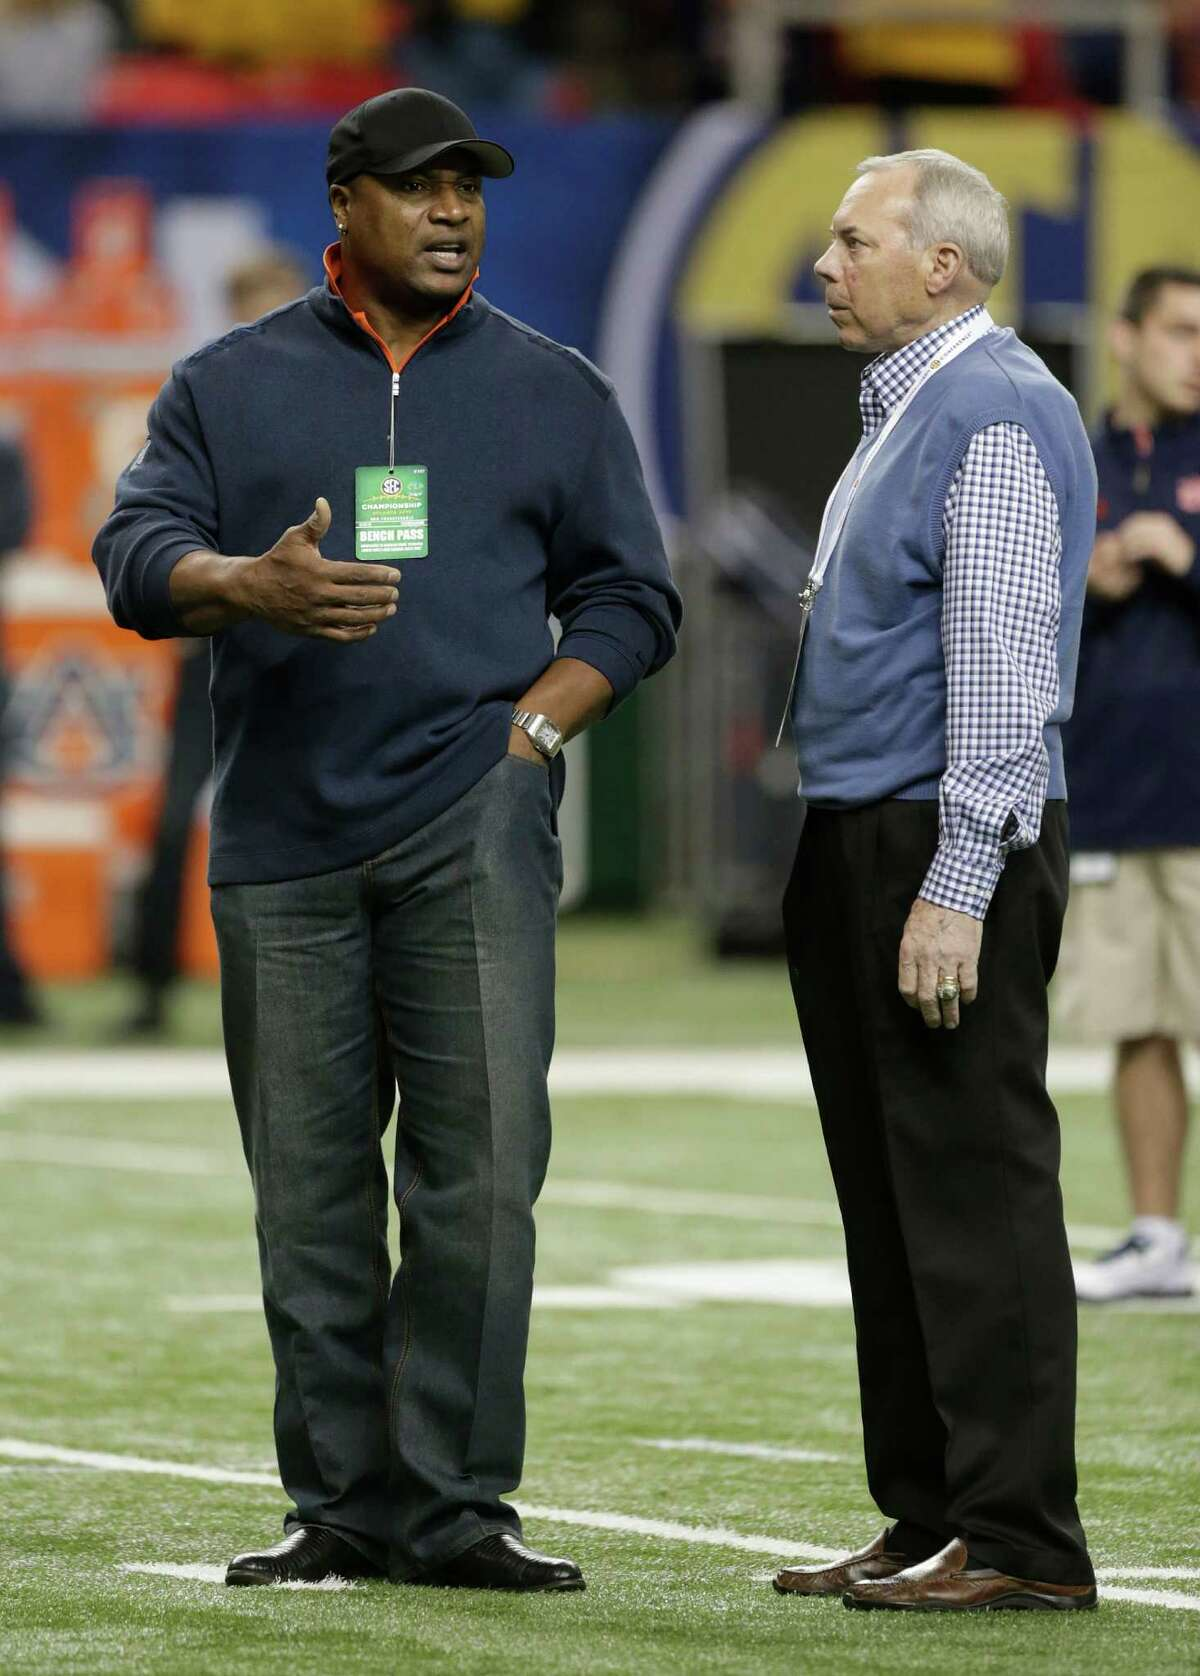 Former Auburn players and Heisman Trophy winners' Bo Jackson, left and Pat Sullivan speak on the field before the first half of the Southeastern Conference NCAA football championship game between the Auburn and the Missouri, Saturday, Dec. 7, 2013, in Atlanta. (AP Photo/Dave Martin) ORG XMIT: GAMS107